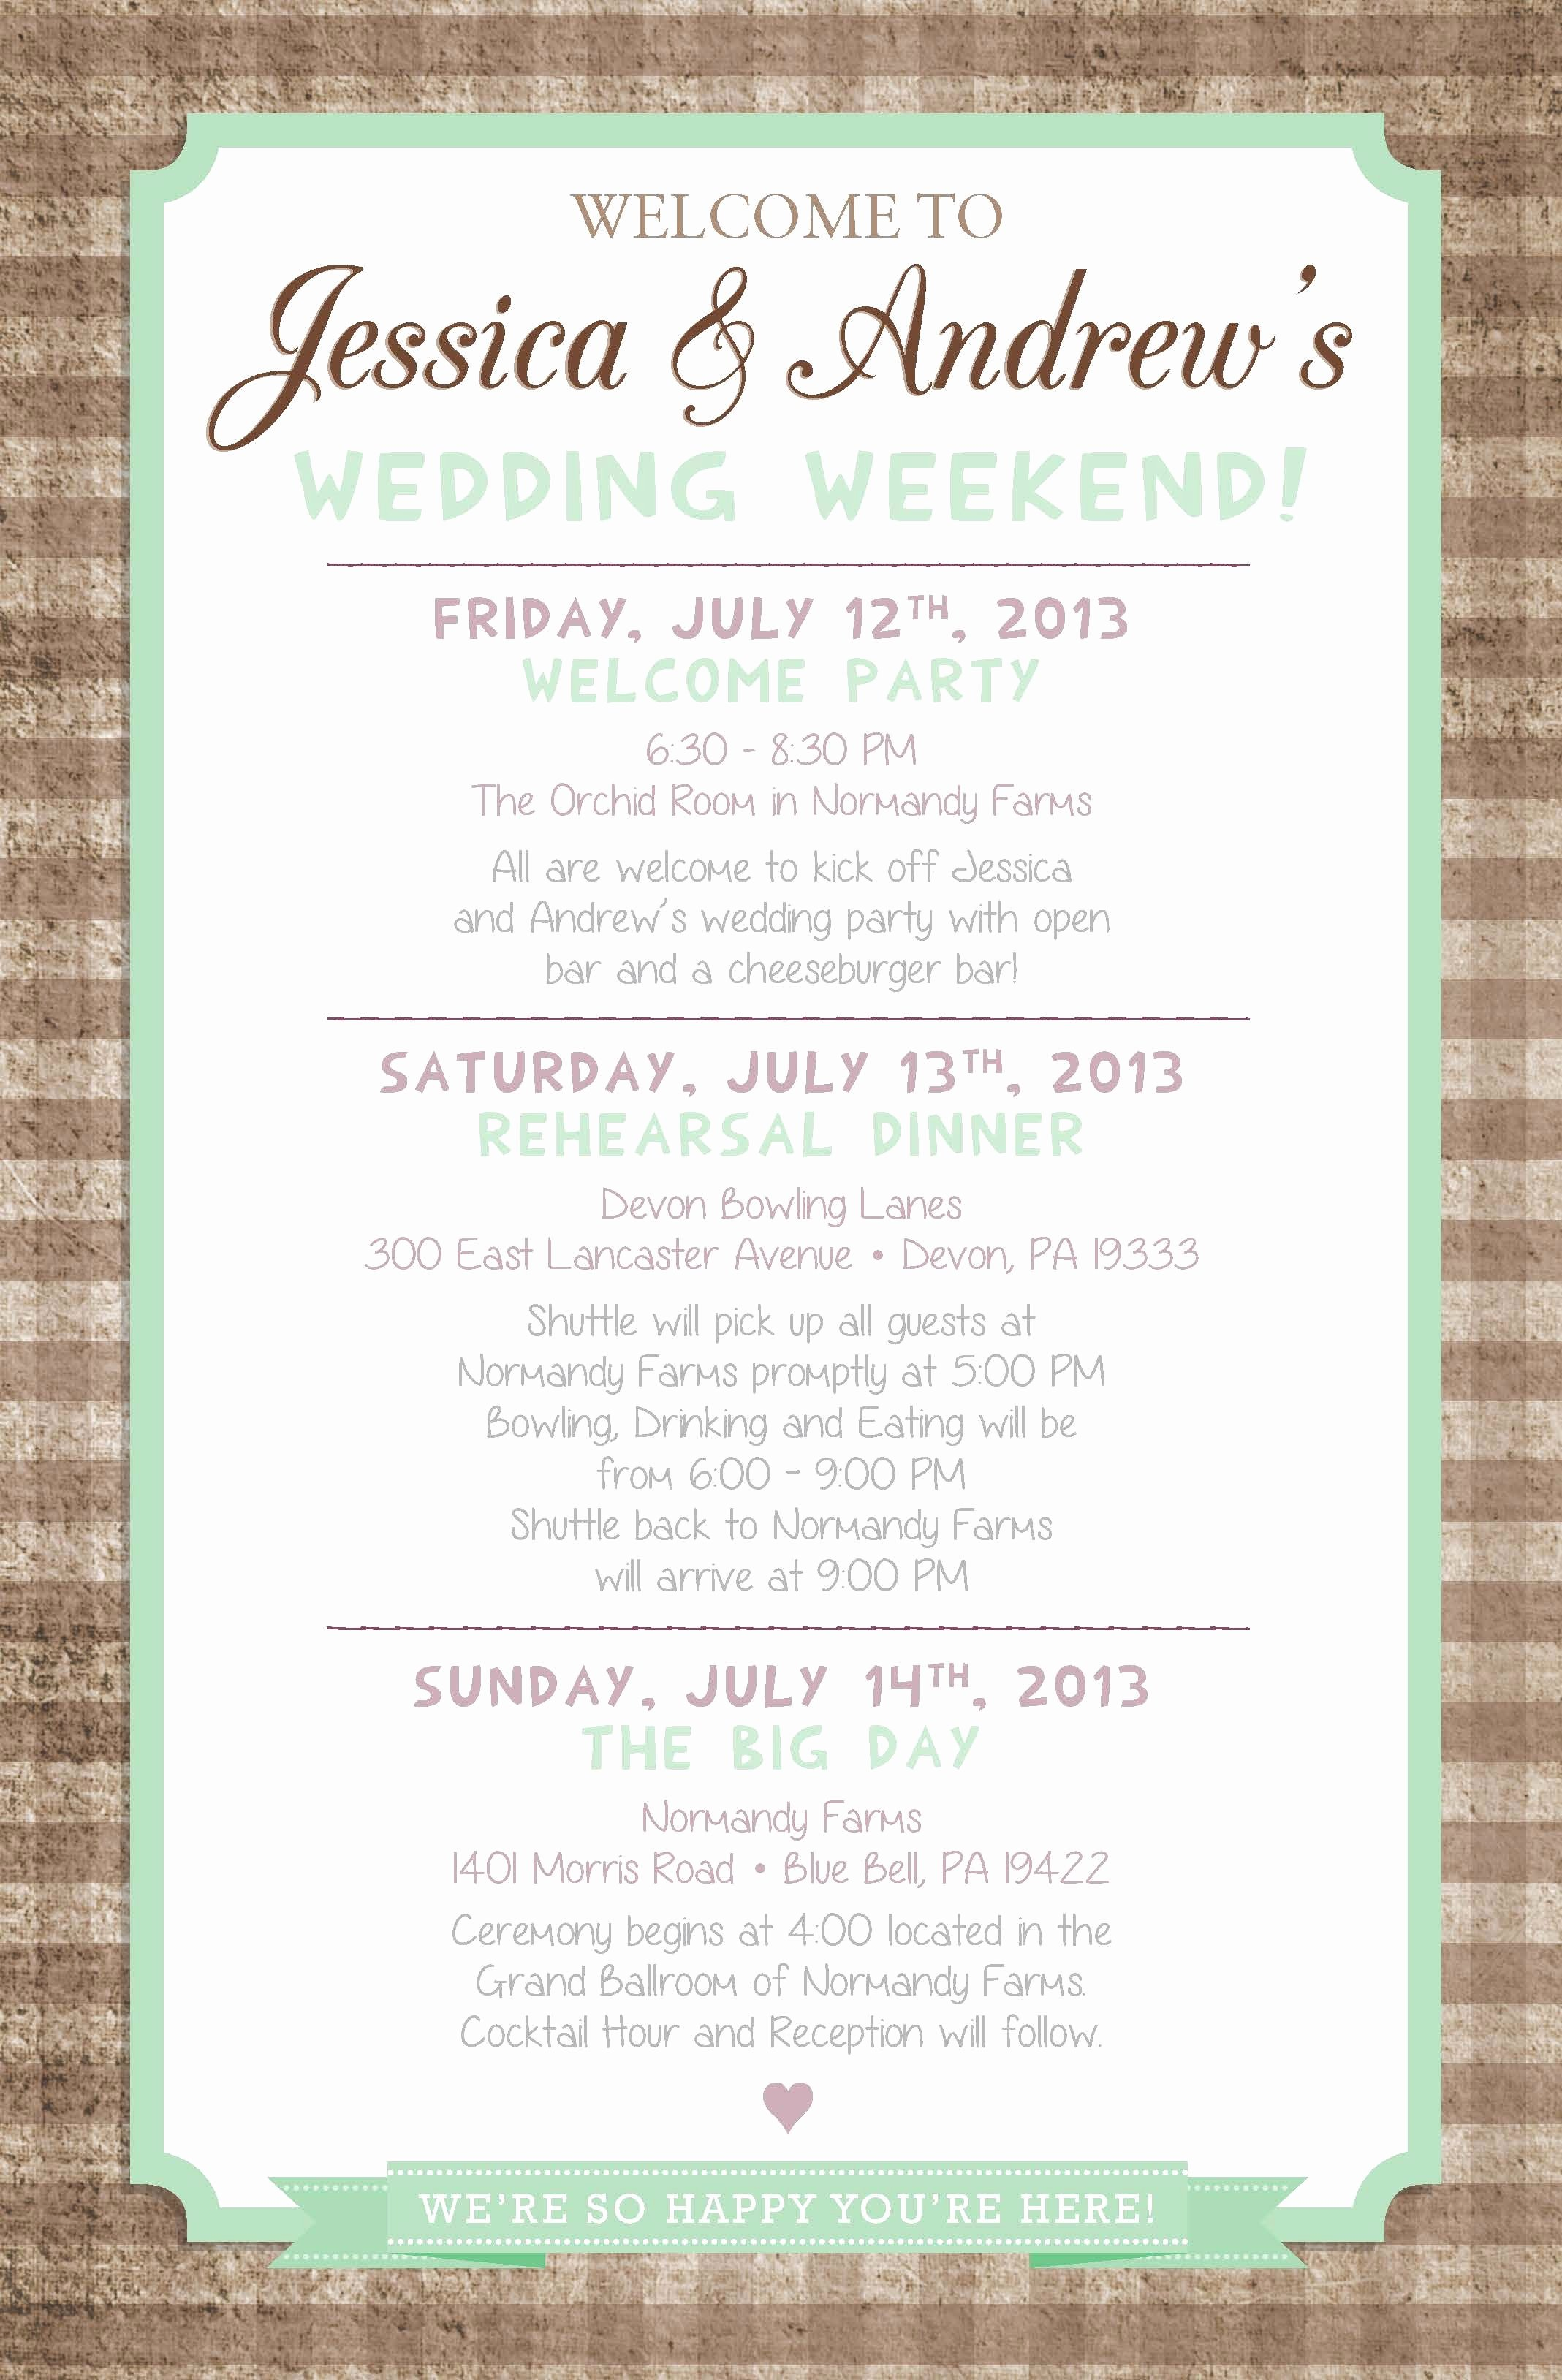 Wedding Weekend Itinerary Template New Country Chic Wedding Weekend Itinerary by Paper & Lace